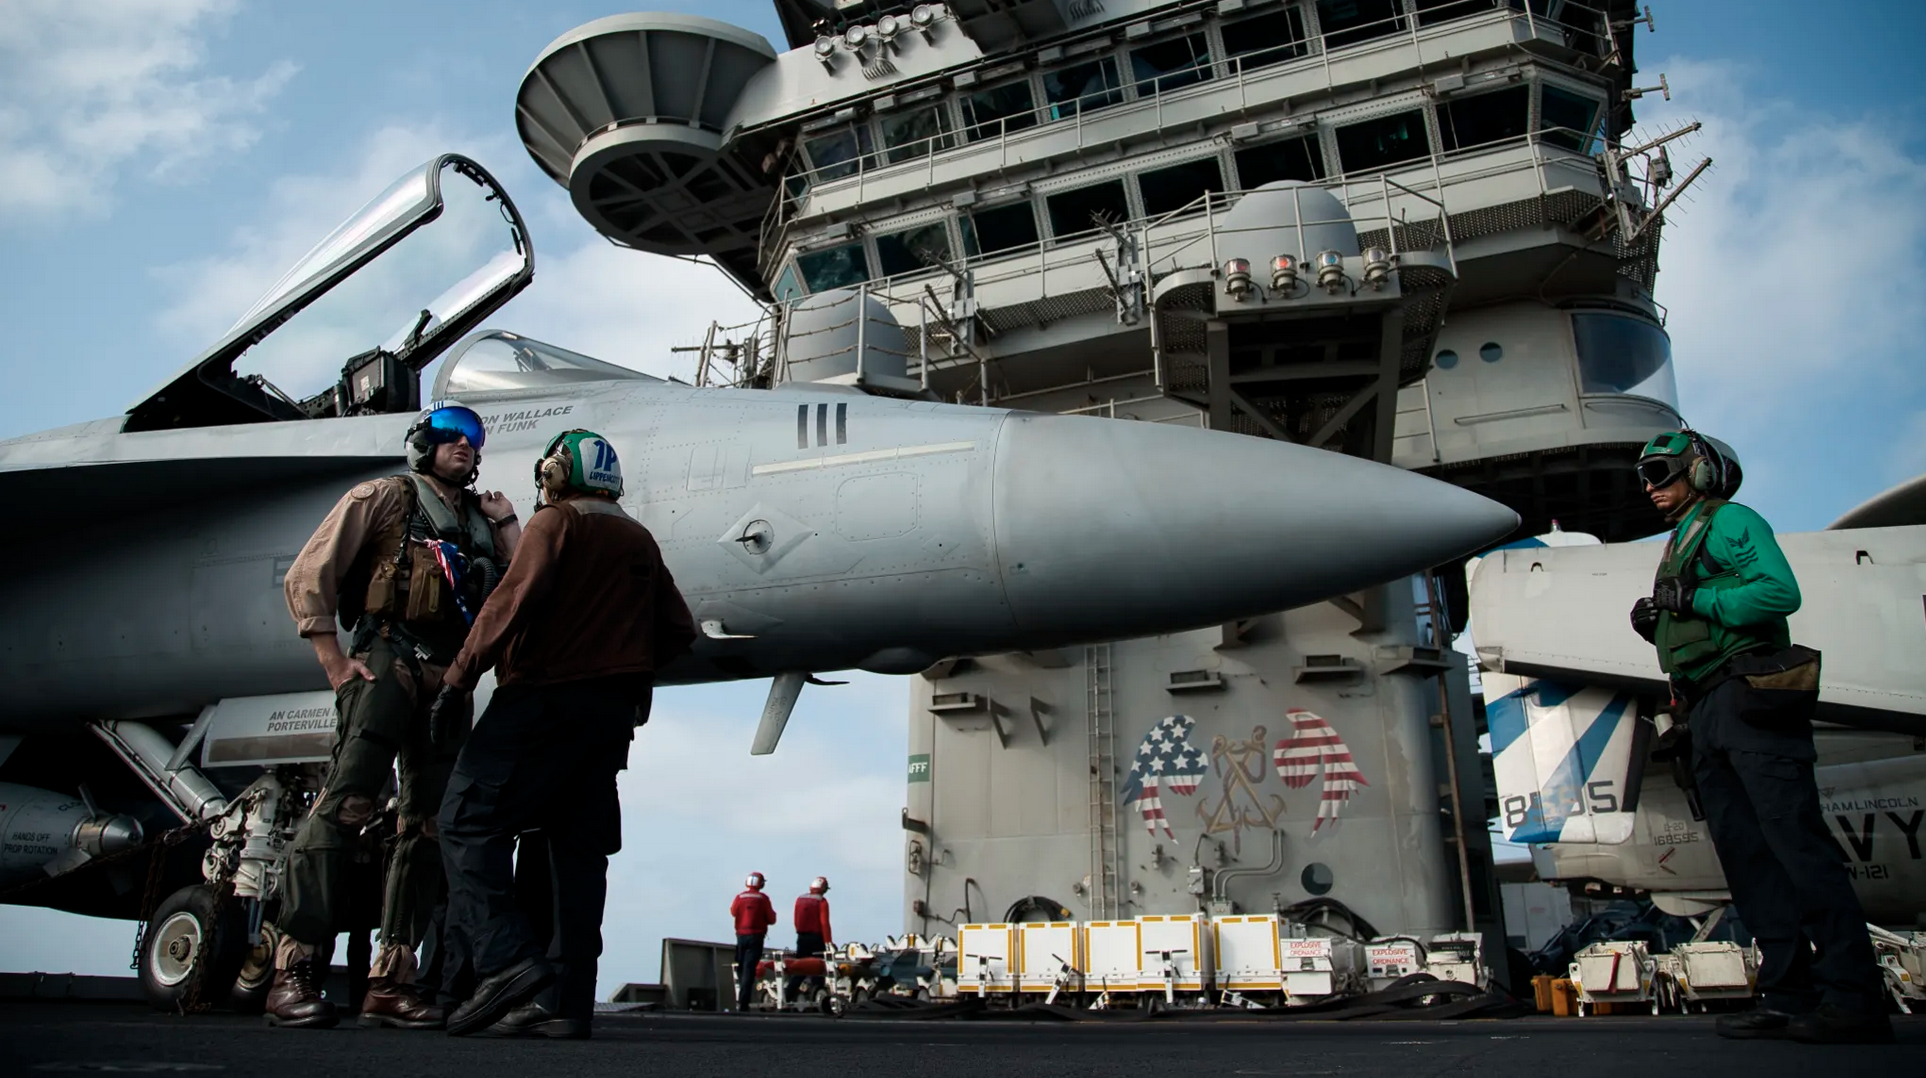 A pilot speaks to a crew member by an F/A-18 fighter jet on the deck of the USS Abraham Lincoln aircraft carrier in the Arabian Sea. Donald Trump has threatened Iran with 'obliteration'. Credit:AP